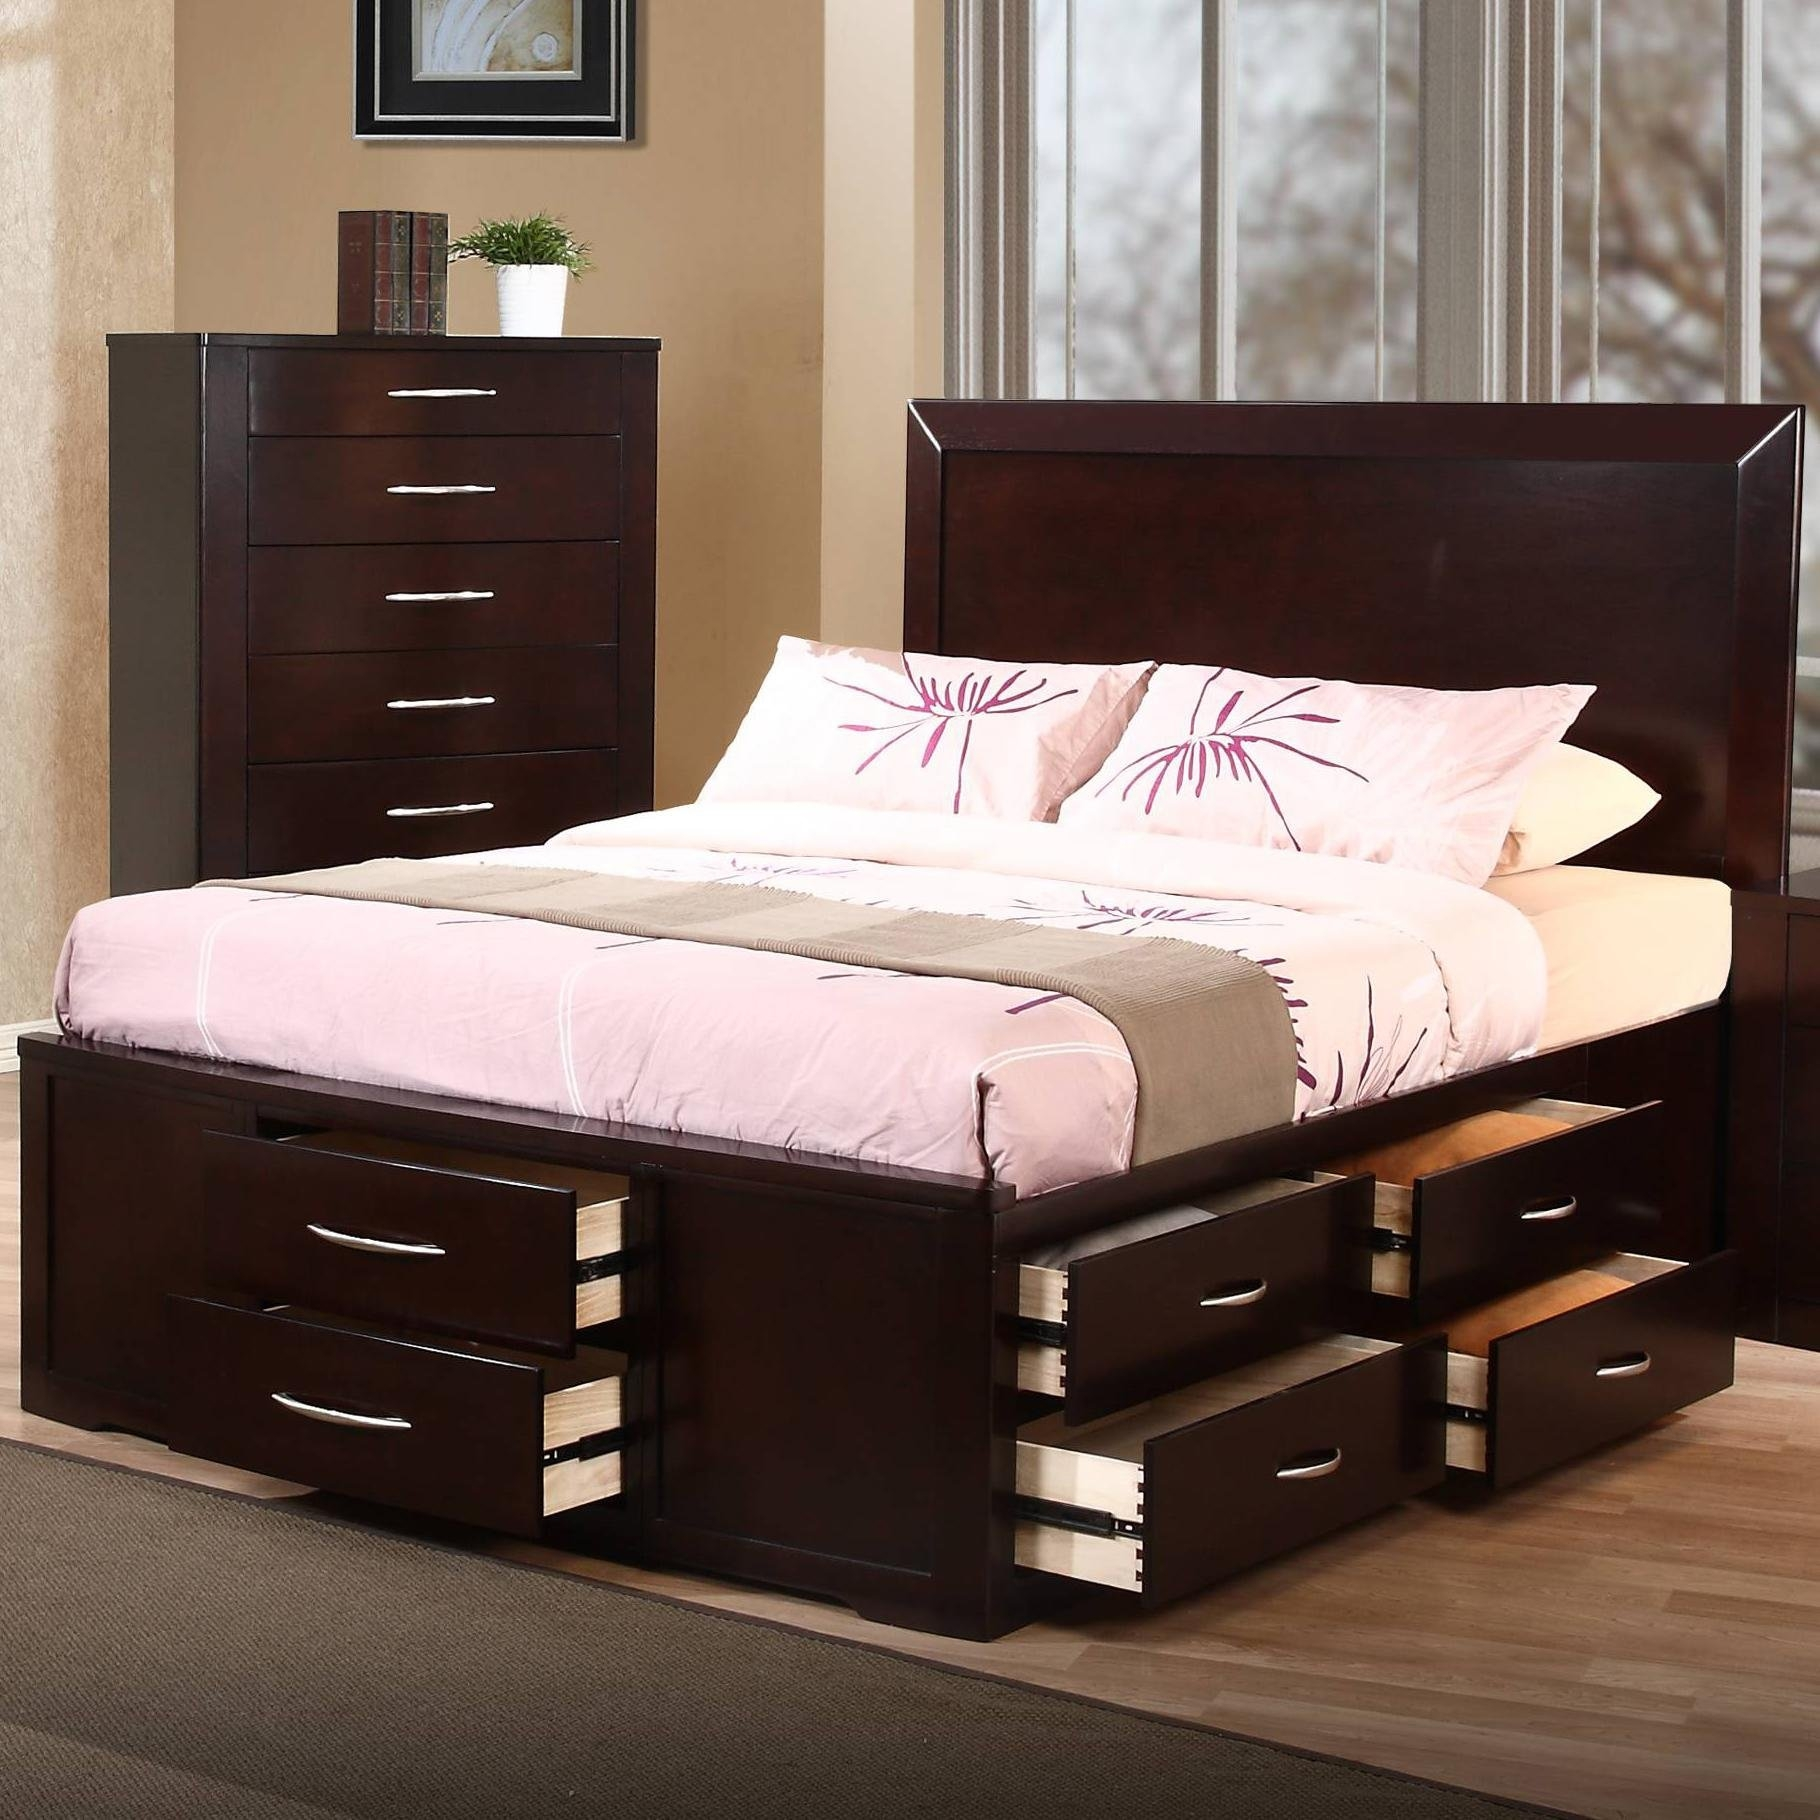 Queen Size Bed Frame With Storage Headboard